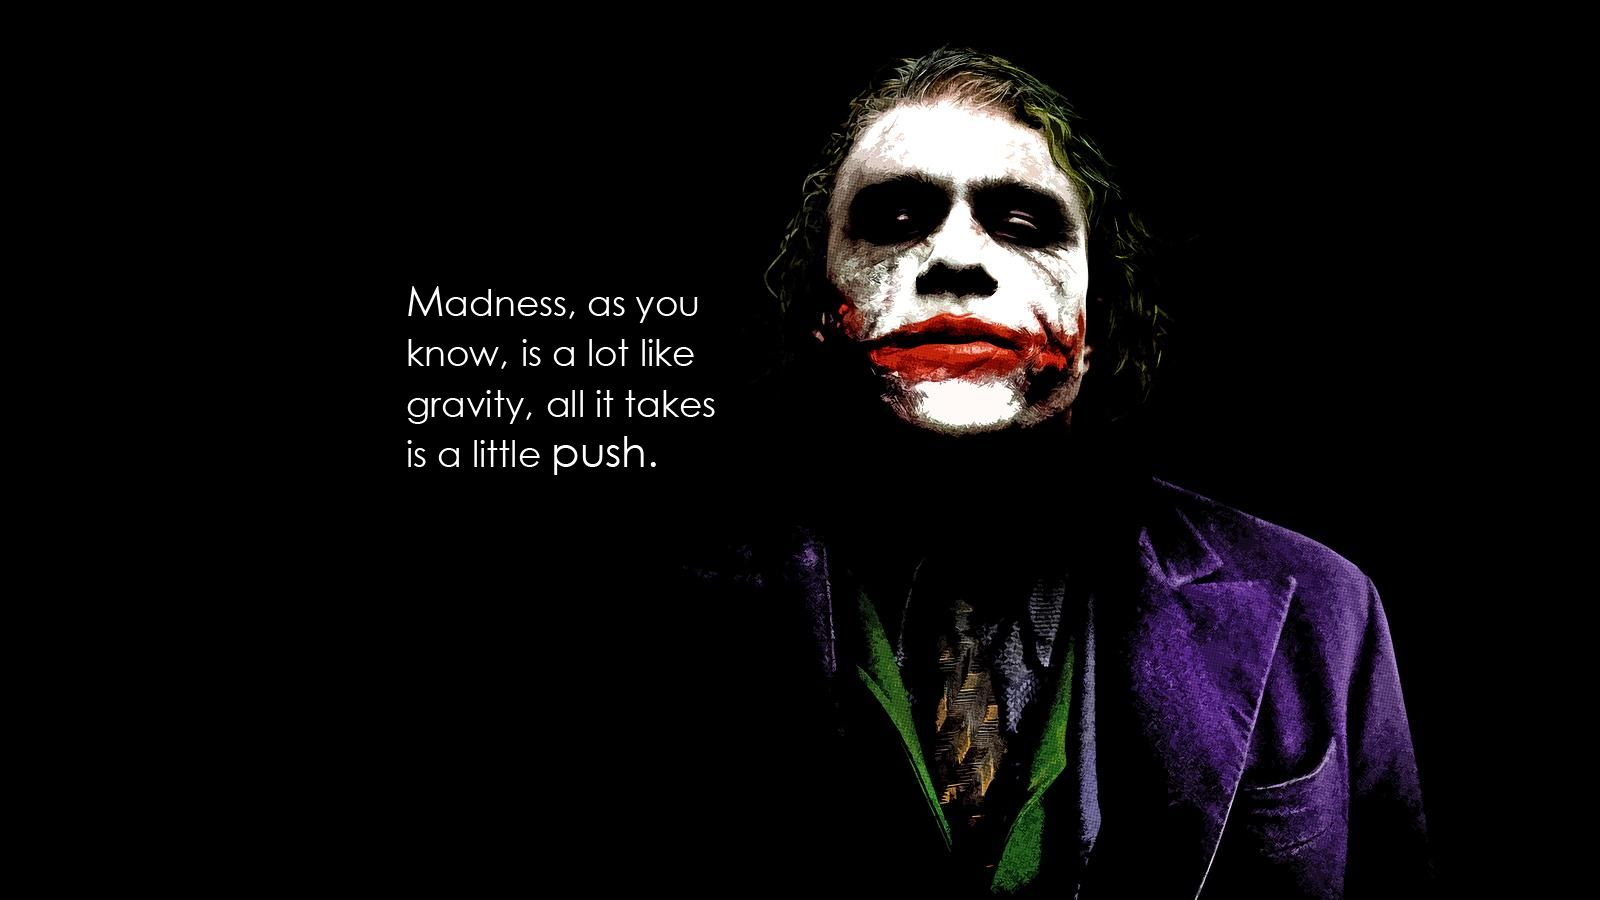 Not that inspirational, but true. Batman, quote by Joker